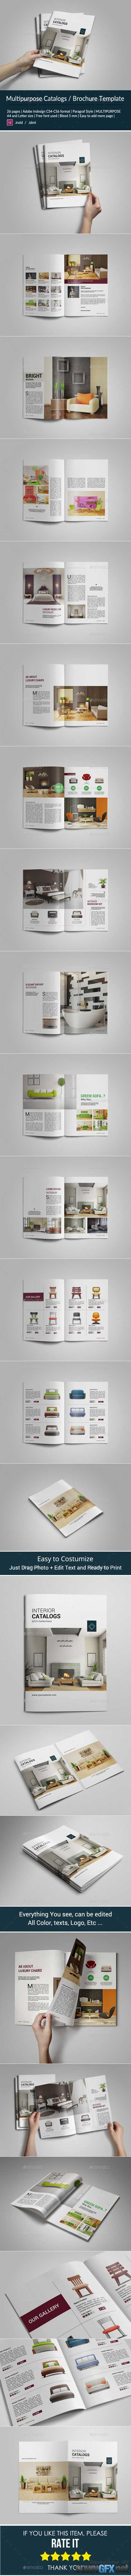 Multipurpose Catalogs / Brochure 9727534